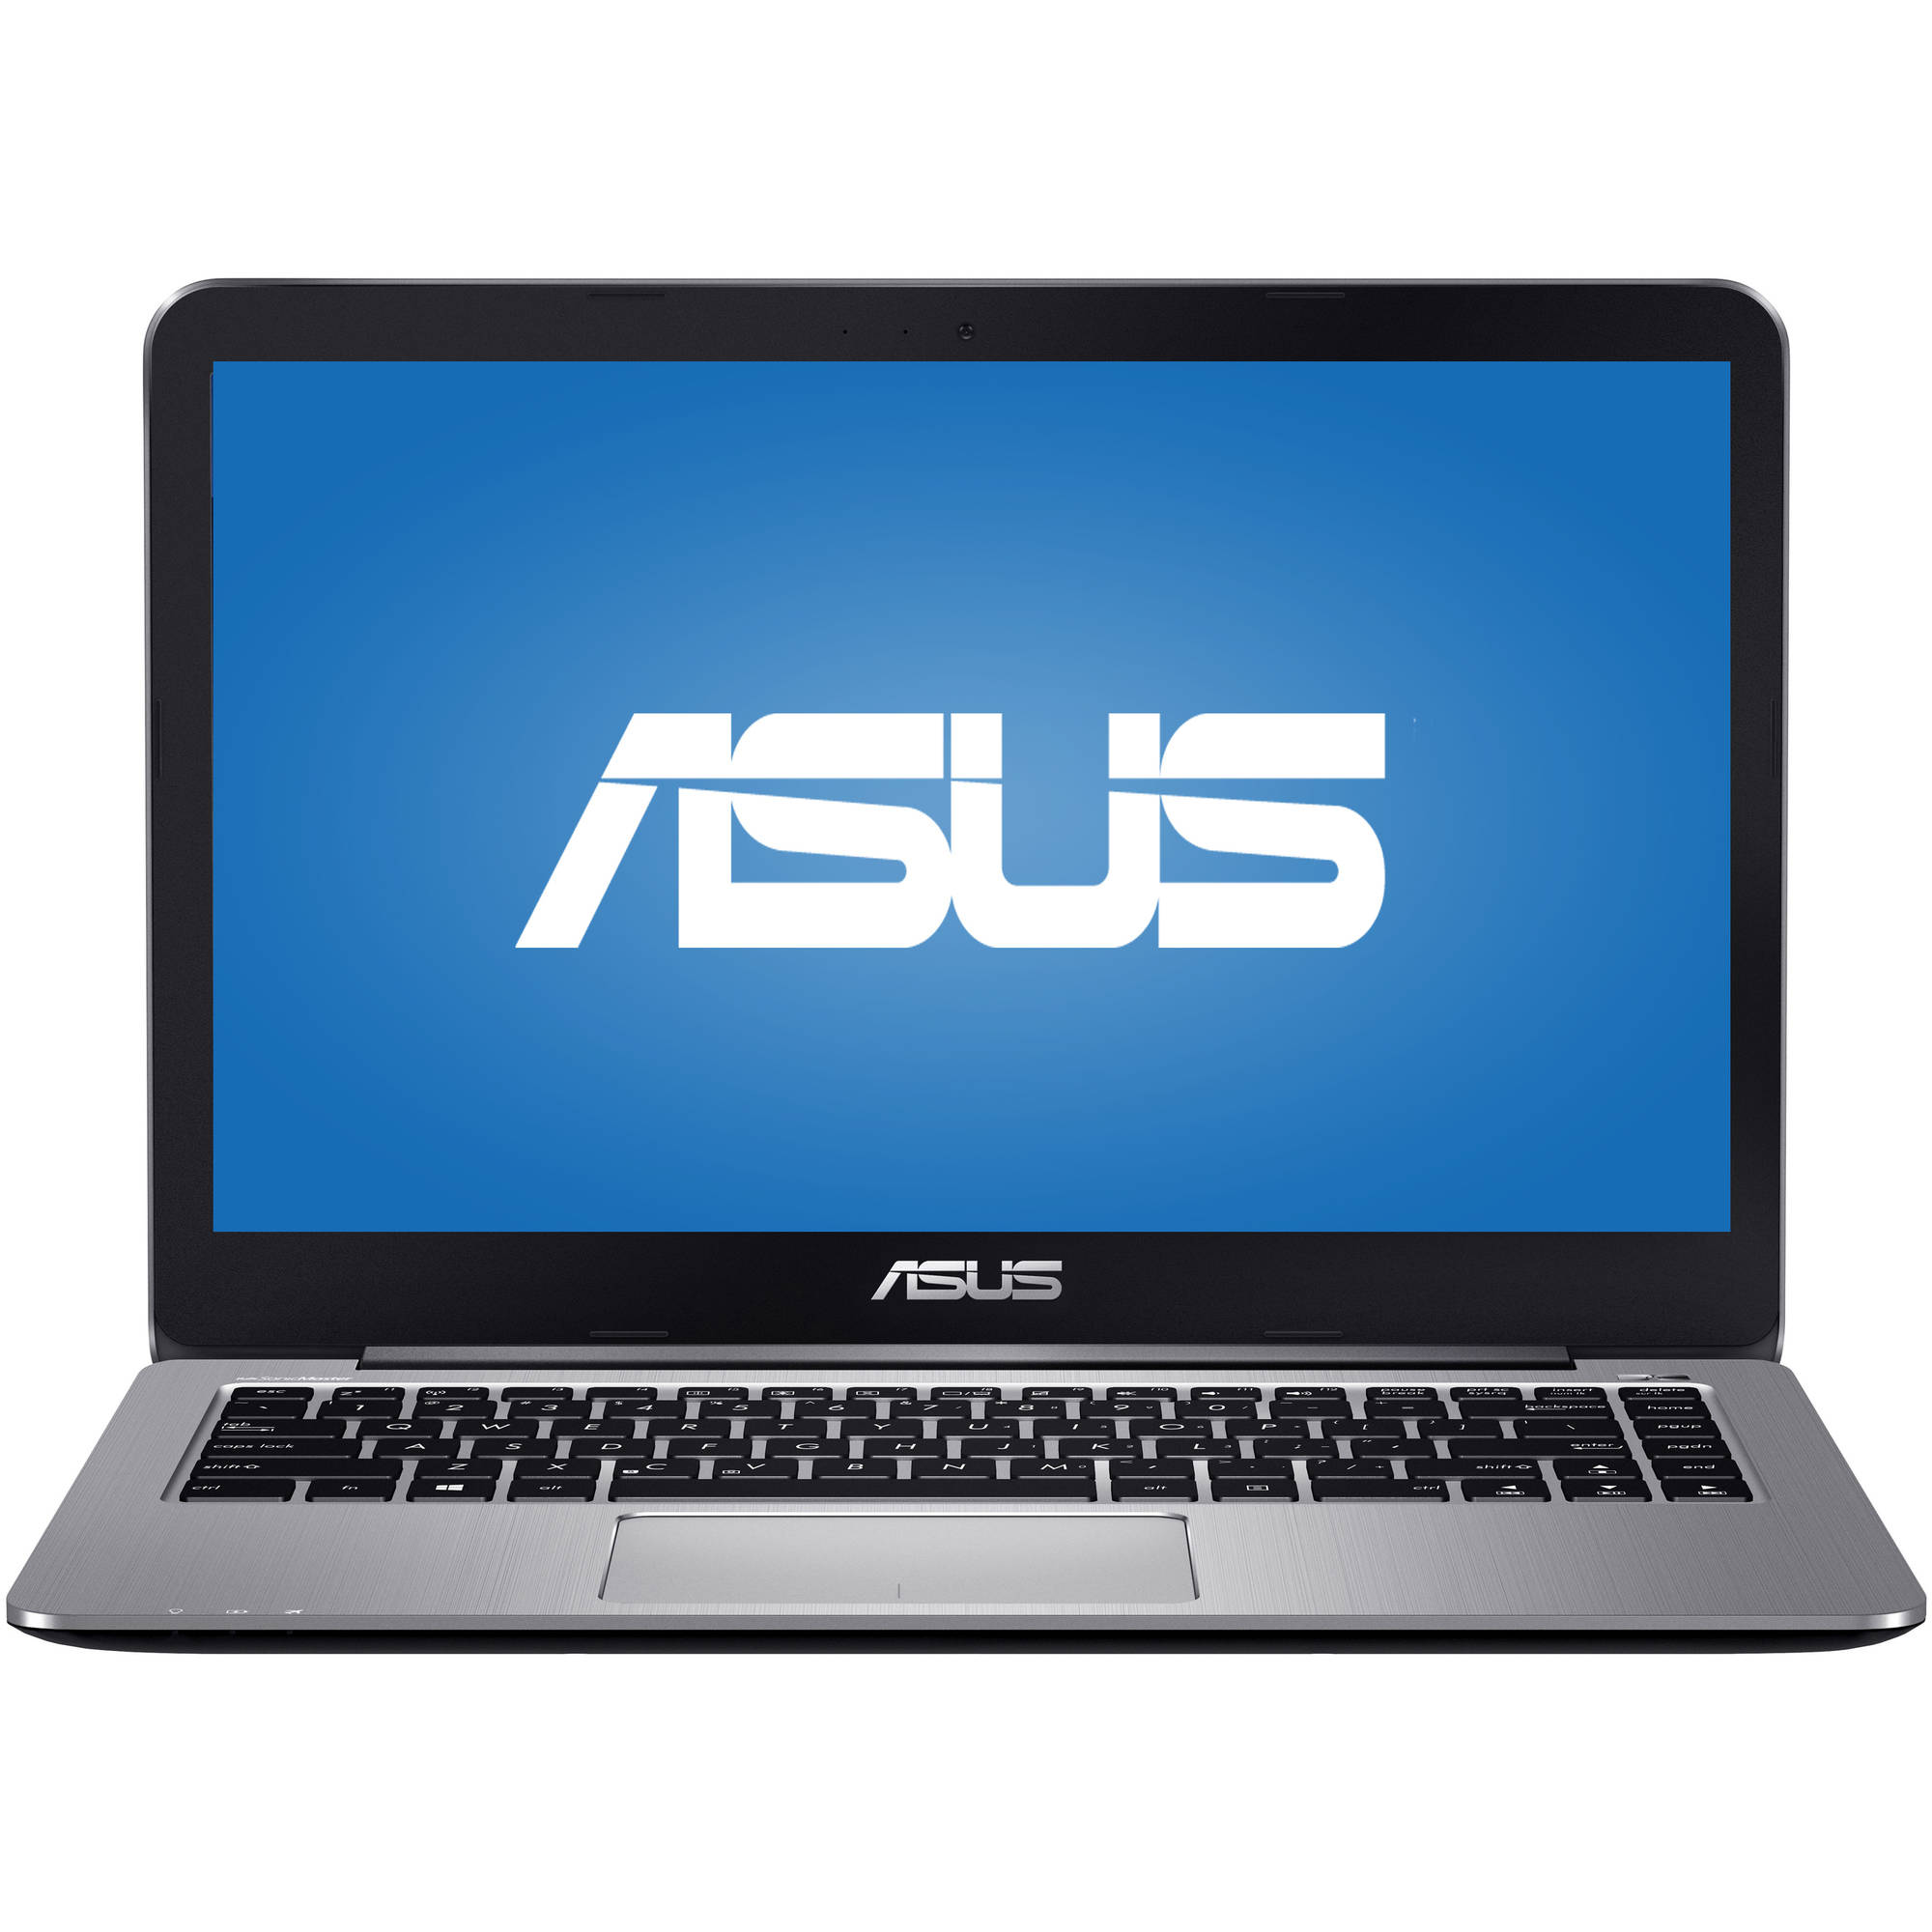 "ASUS VivoBook E403SA-US21 14"" Laptop, Windows 10 Home, Intel Pentium N3700 Quad-Core Processor, 4GB RAM, 128GB Flash Memory"